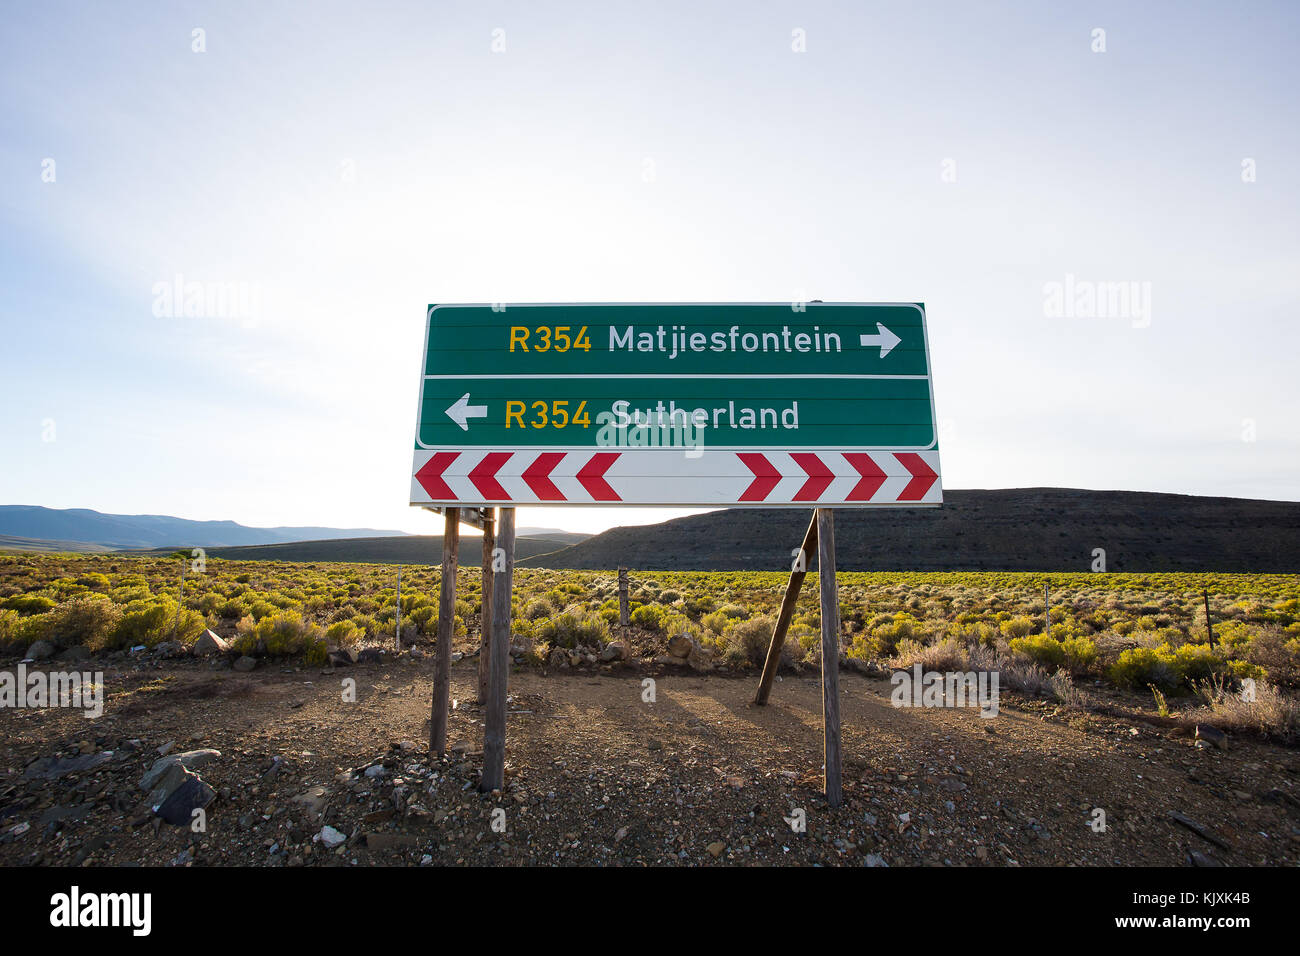 Wide Angle view of a road sign on the highway in the Tankwa Karoo, pointing out the direction to the two towns, - Stock Image